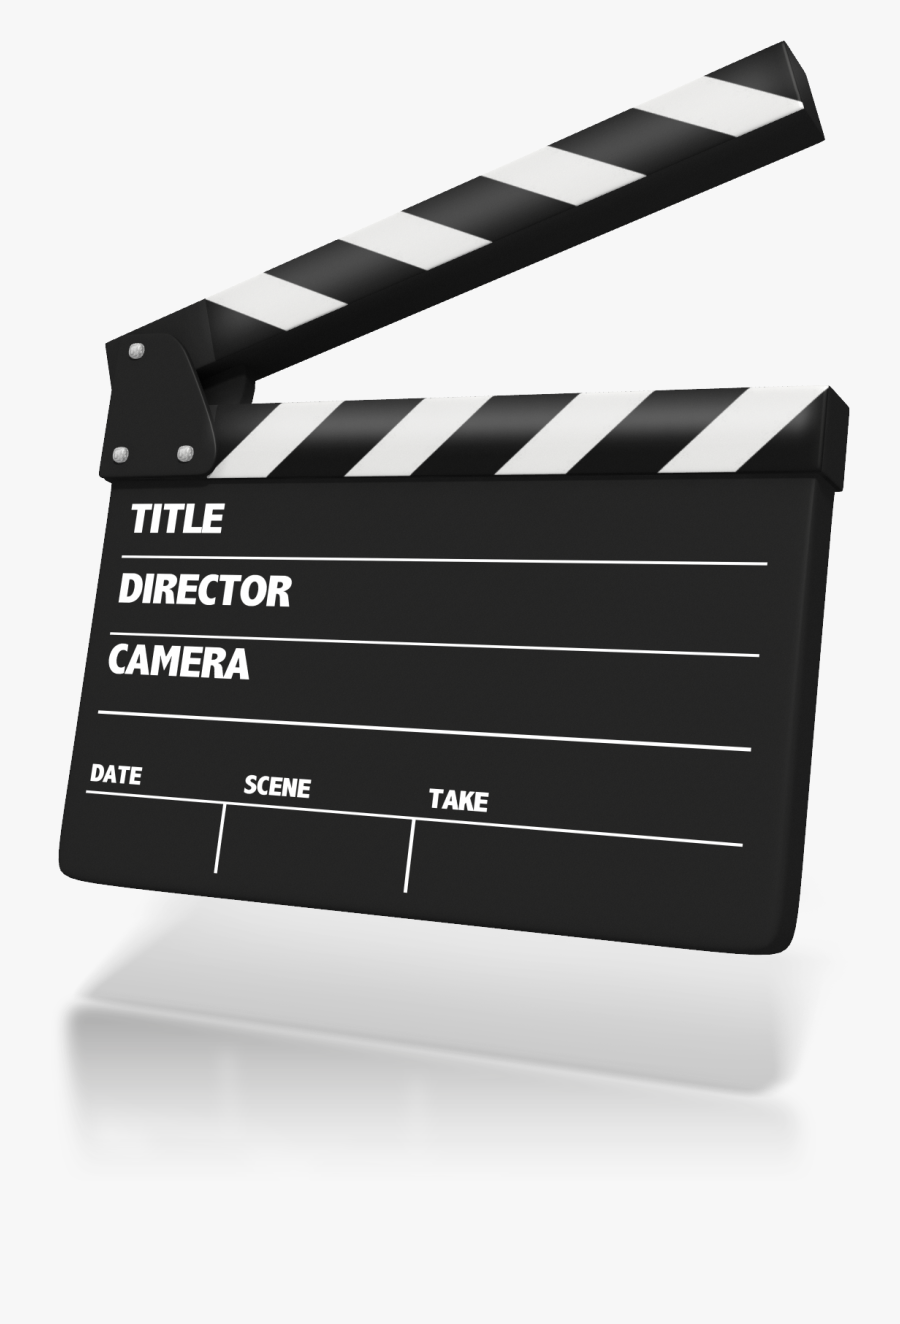 Clapperboard Animation Presentation Clapping Clip Art - Movie Clapper Board Animated, Transparent Clipart